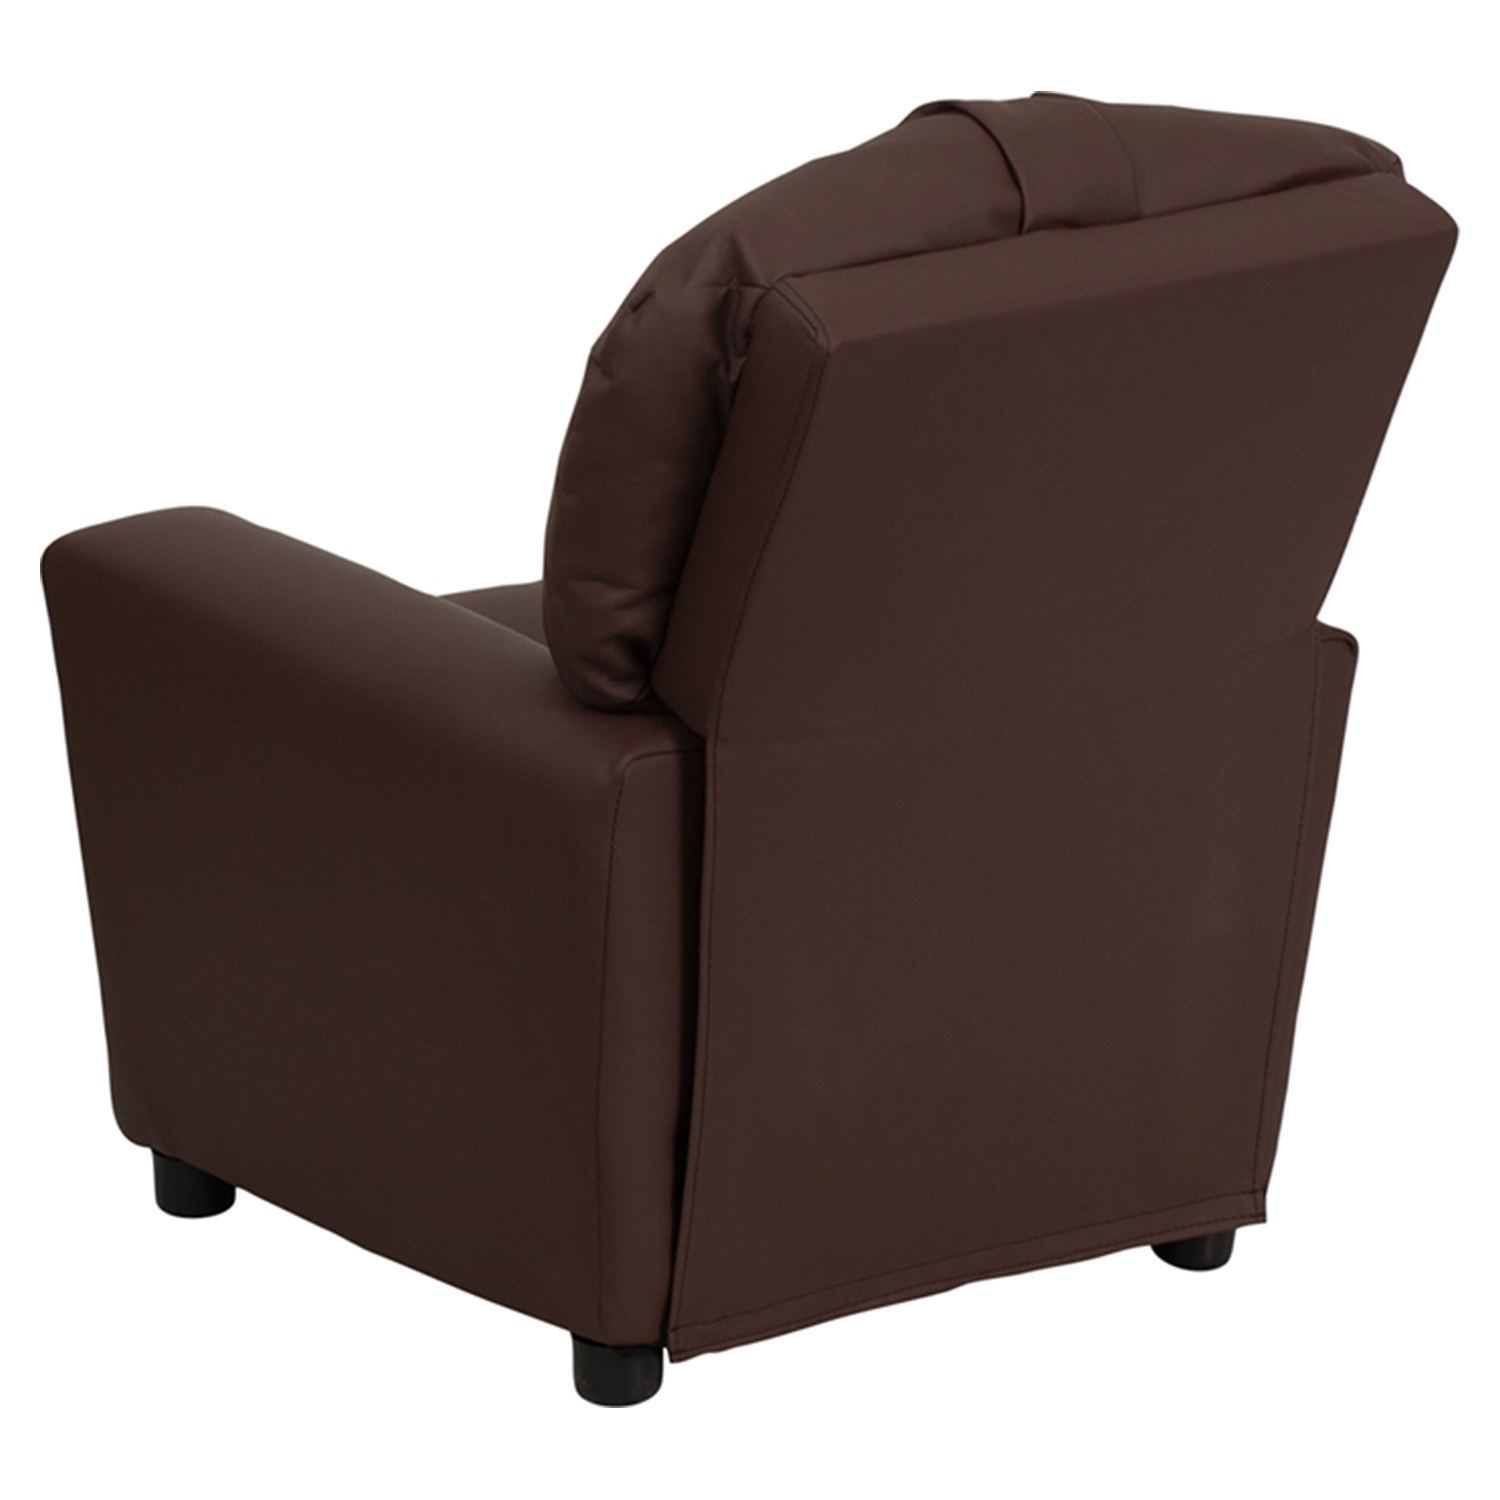 ... Leather Kids Recliner Chair   Cup Holder, Brown   FLSH BT 7950  ...